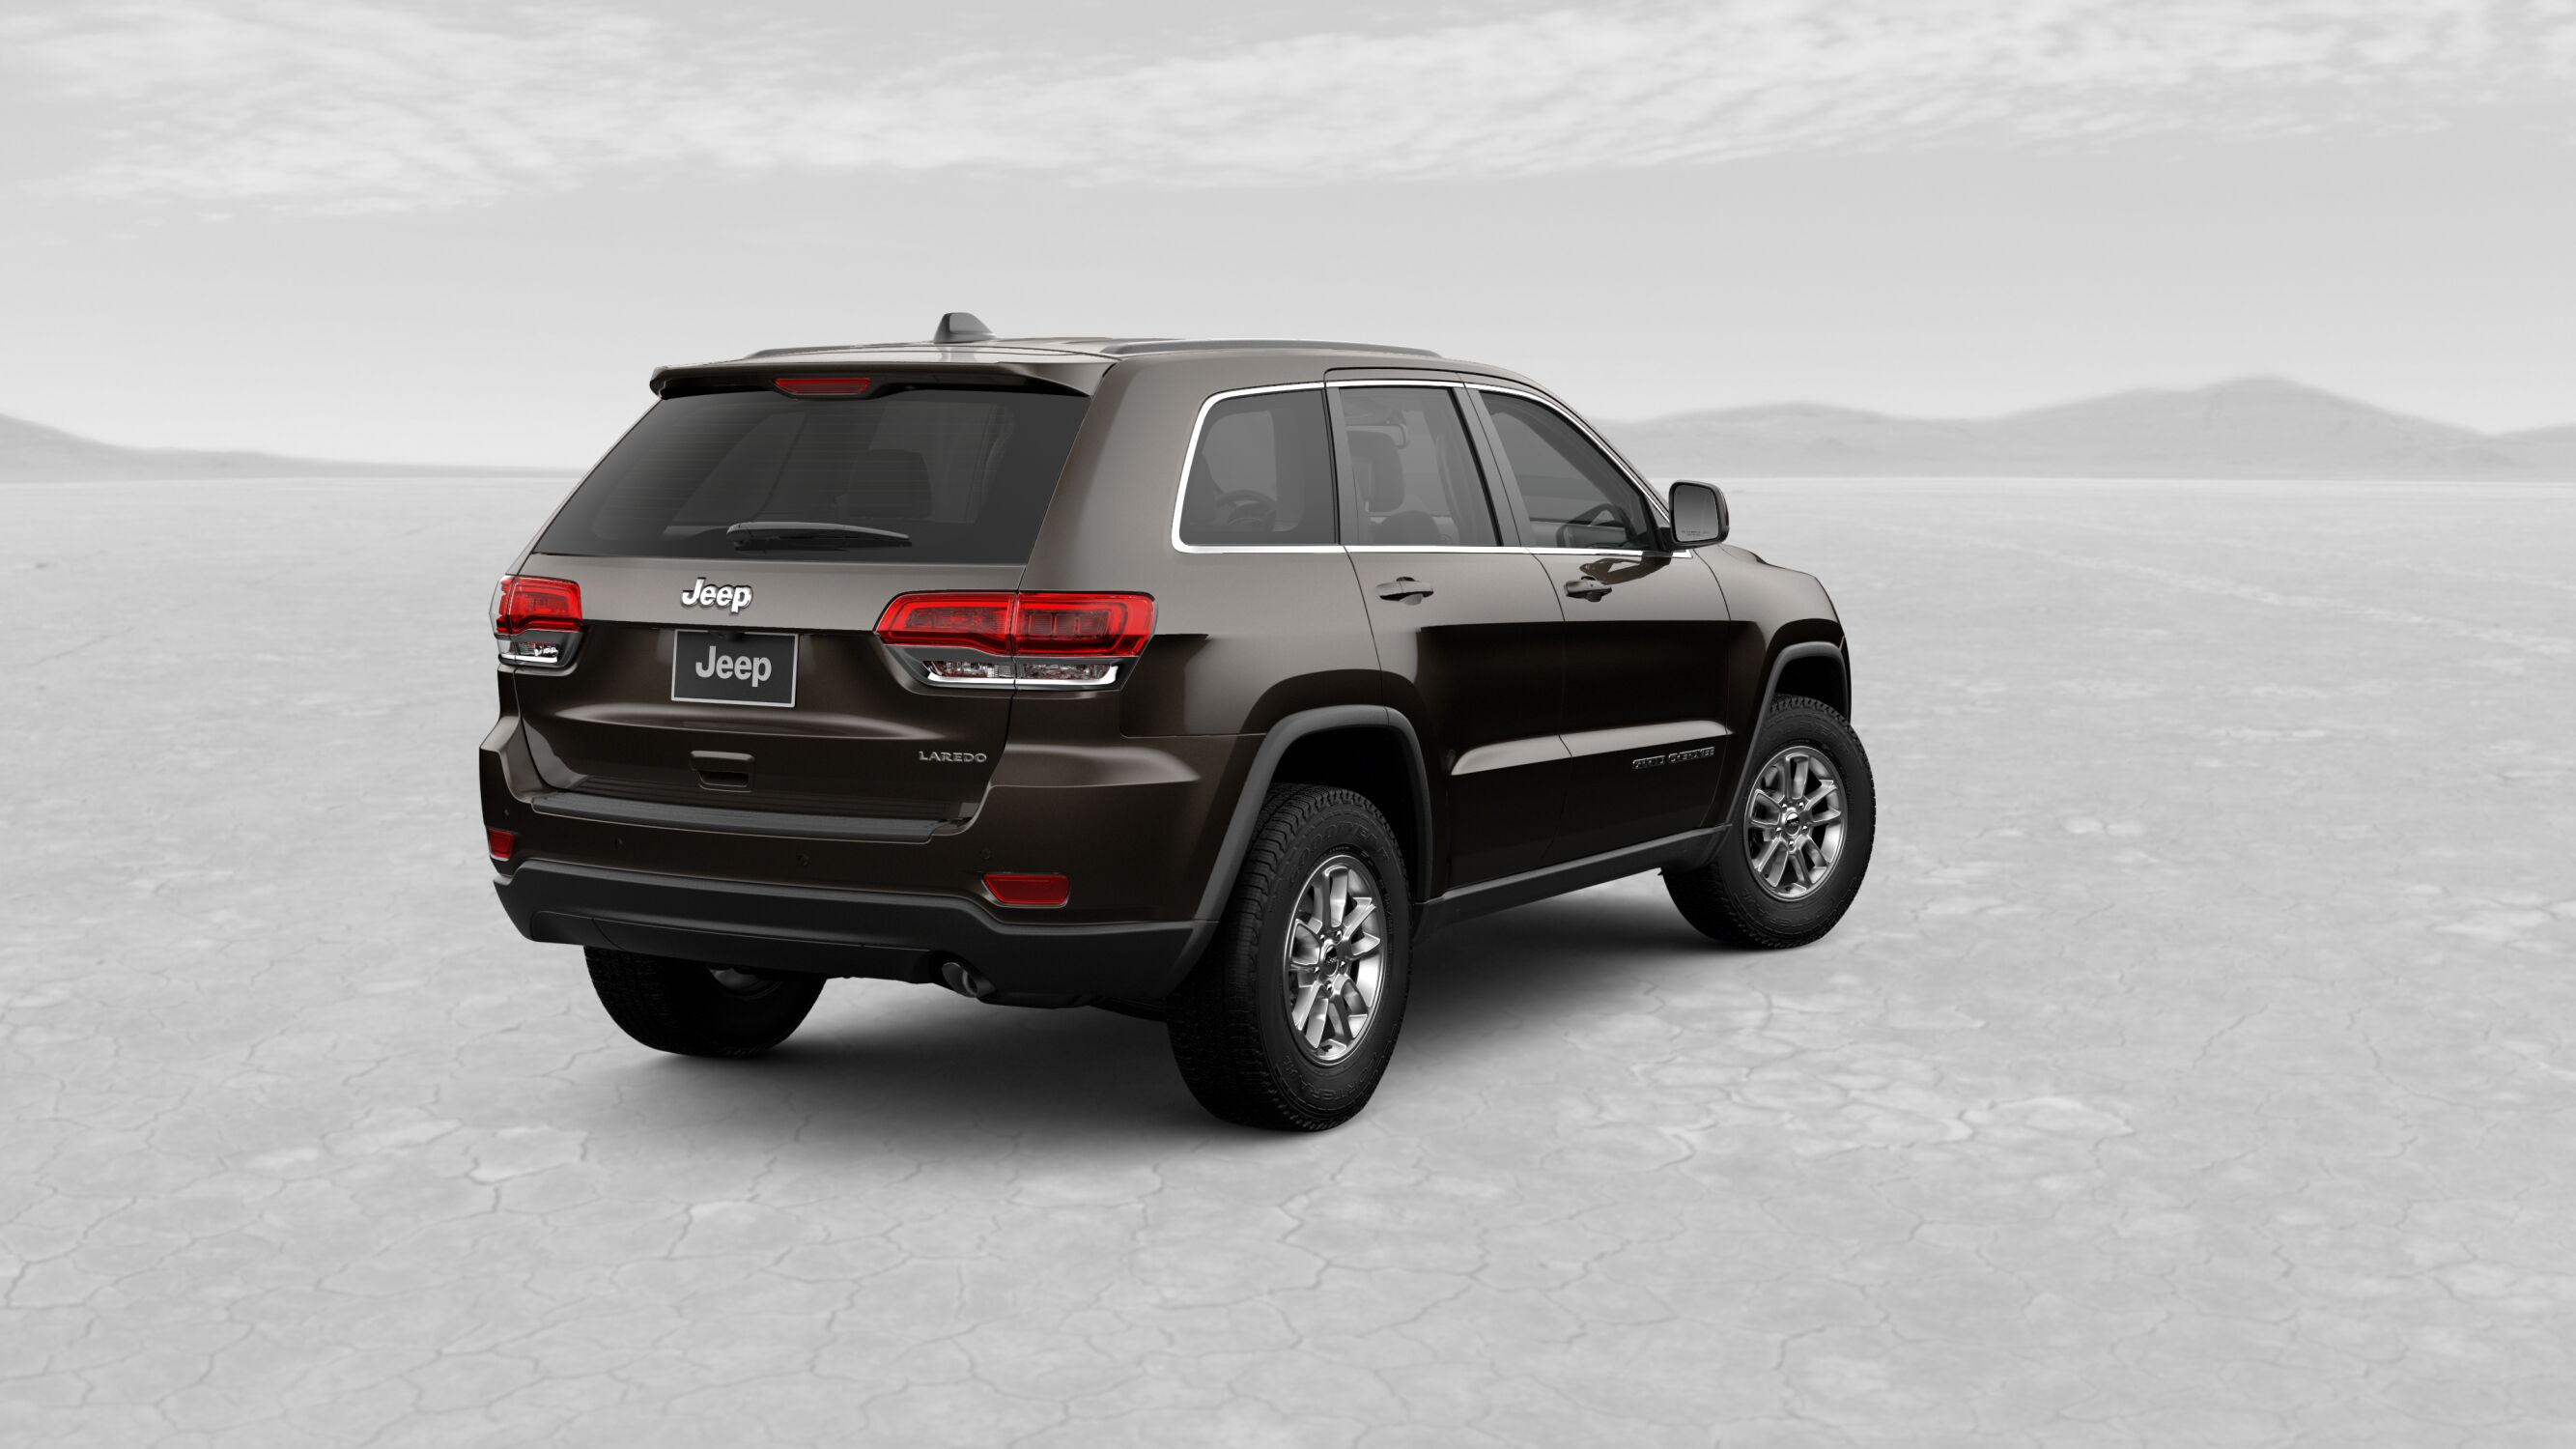 2019 Jeep Grand Cherokee Laredo Brown Exterior Rear